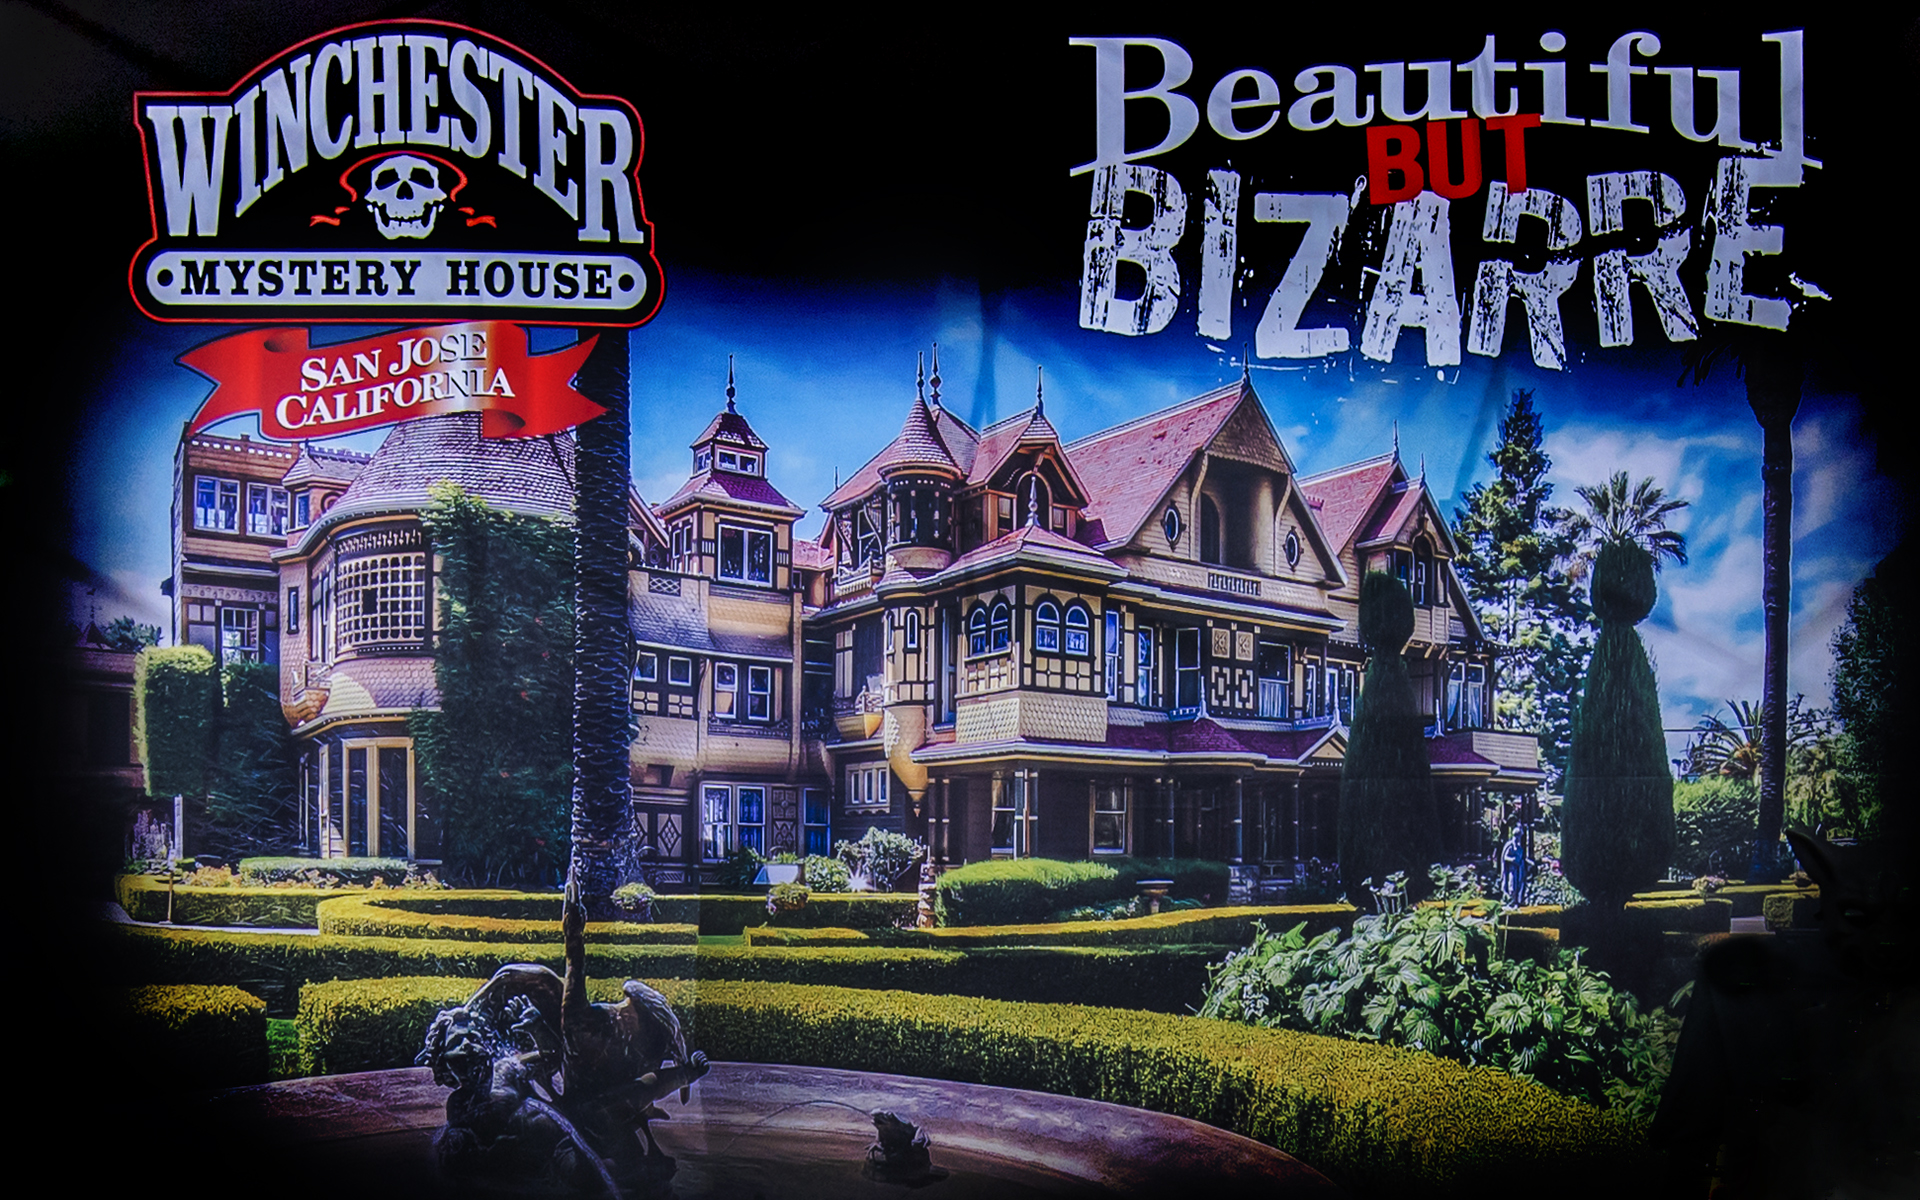 winchester mystery house hallowe'en candlelight tours: 2016 review